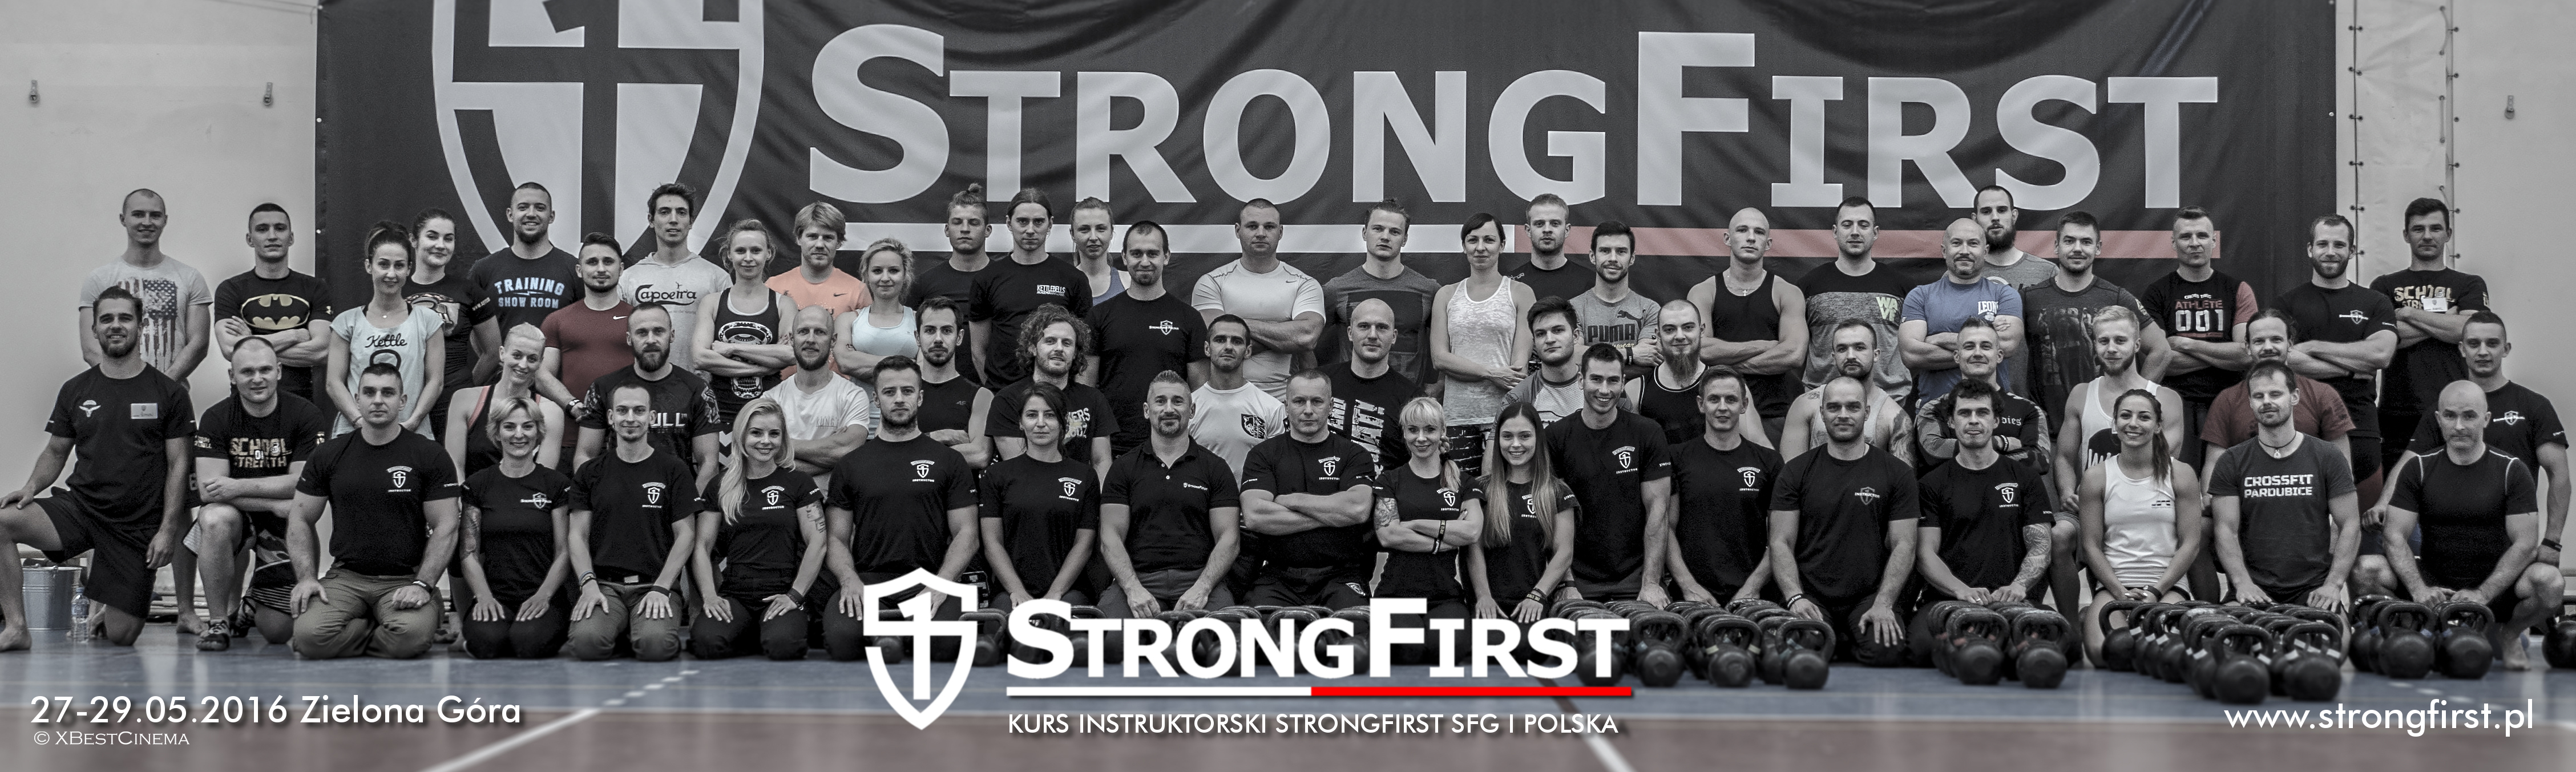 20160529_strongfirst_instructor_full